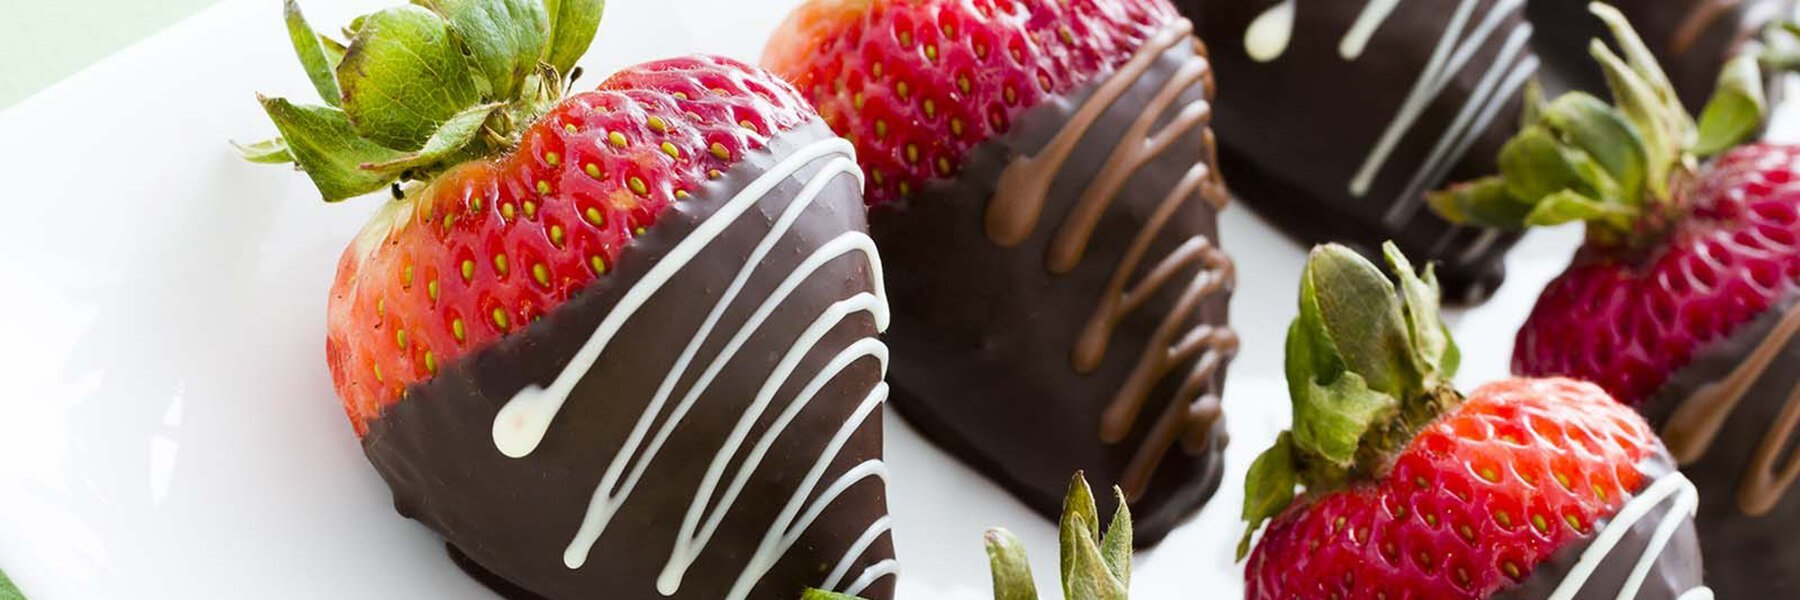 Chocolate Covered Strawberries & Fruit Gifts